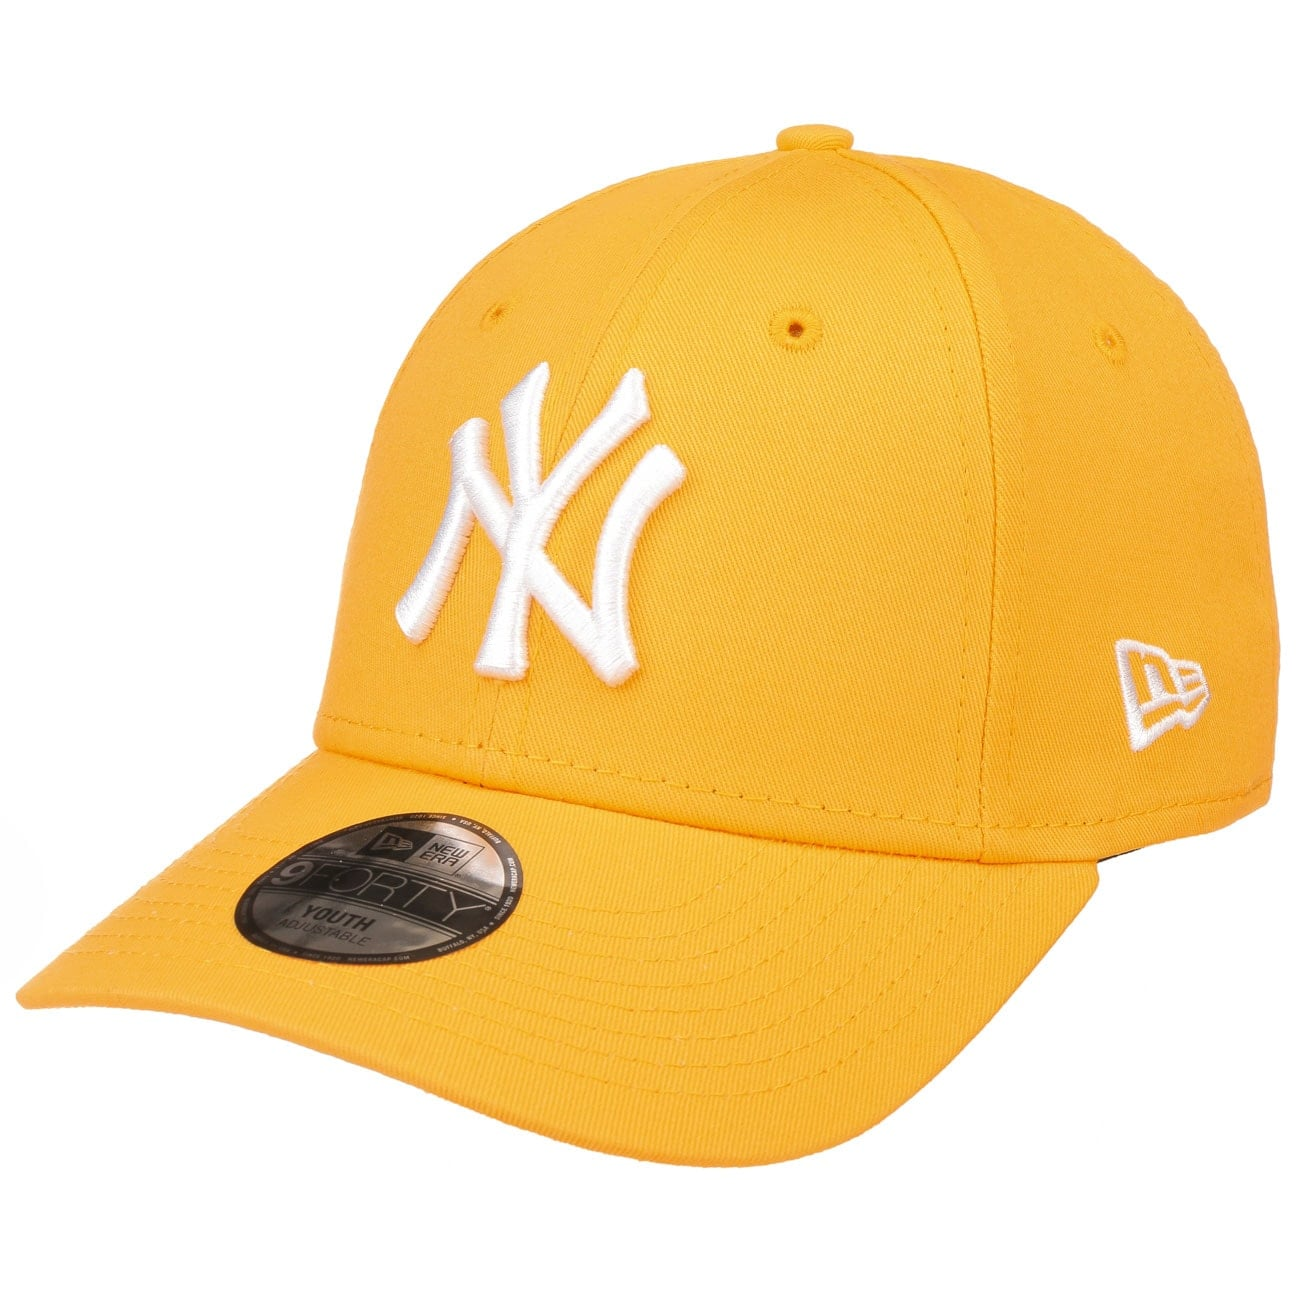 940 KIDS Ess Yankees by New Era